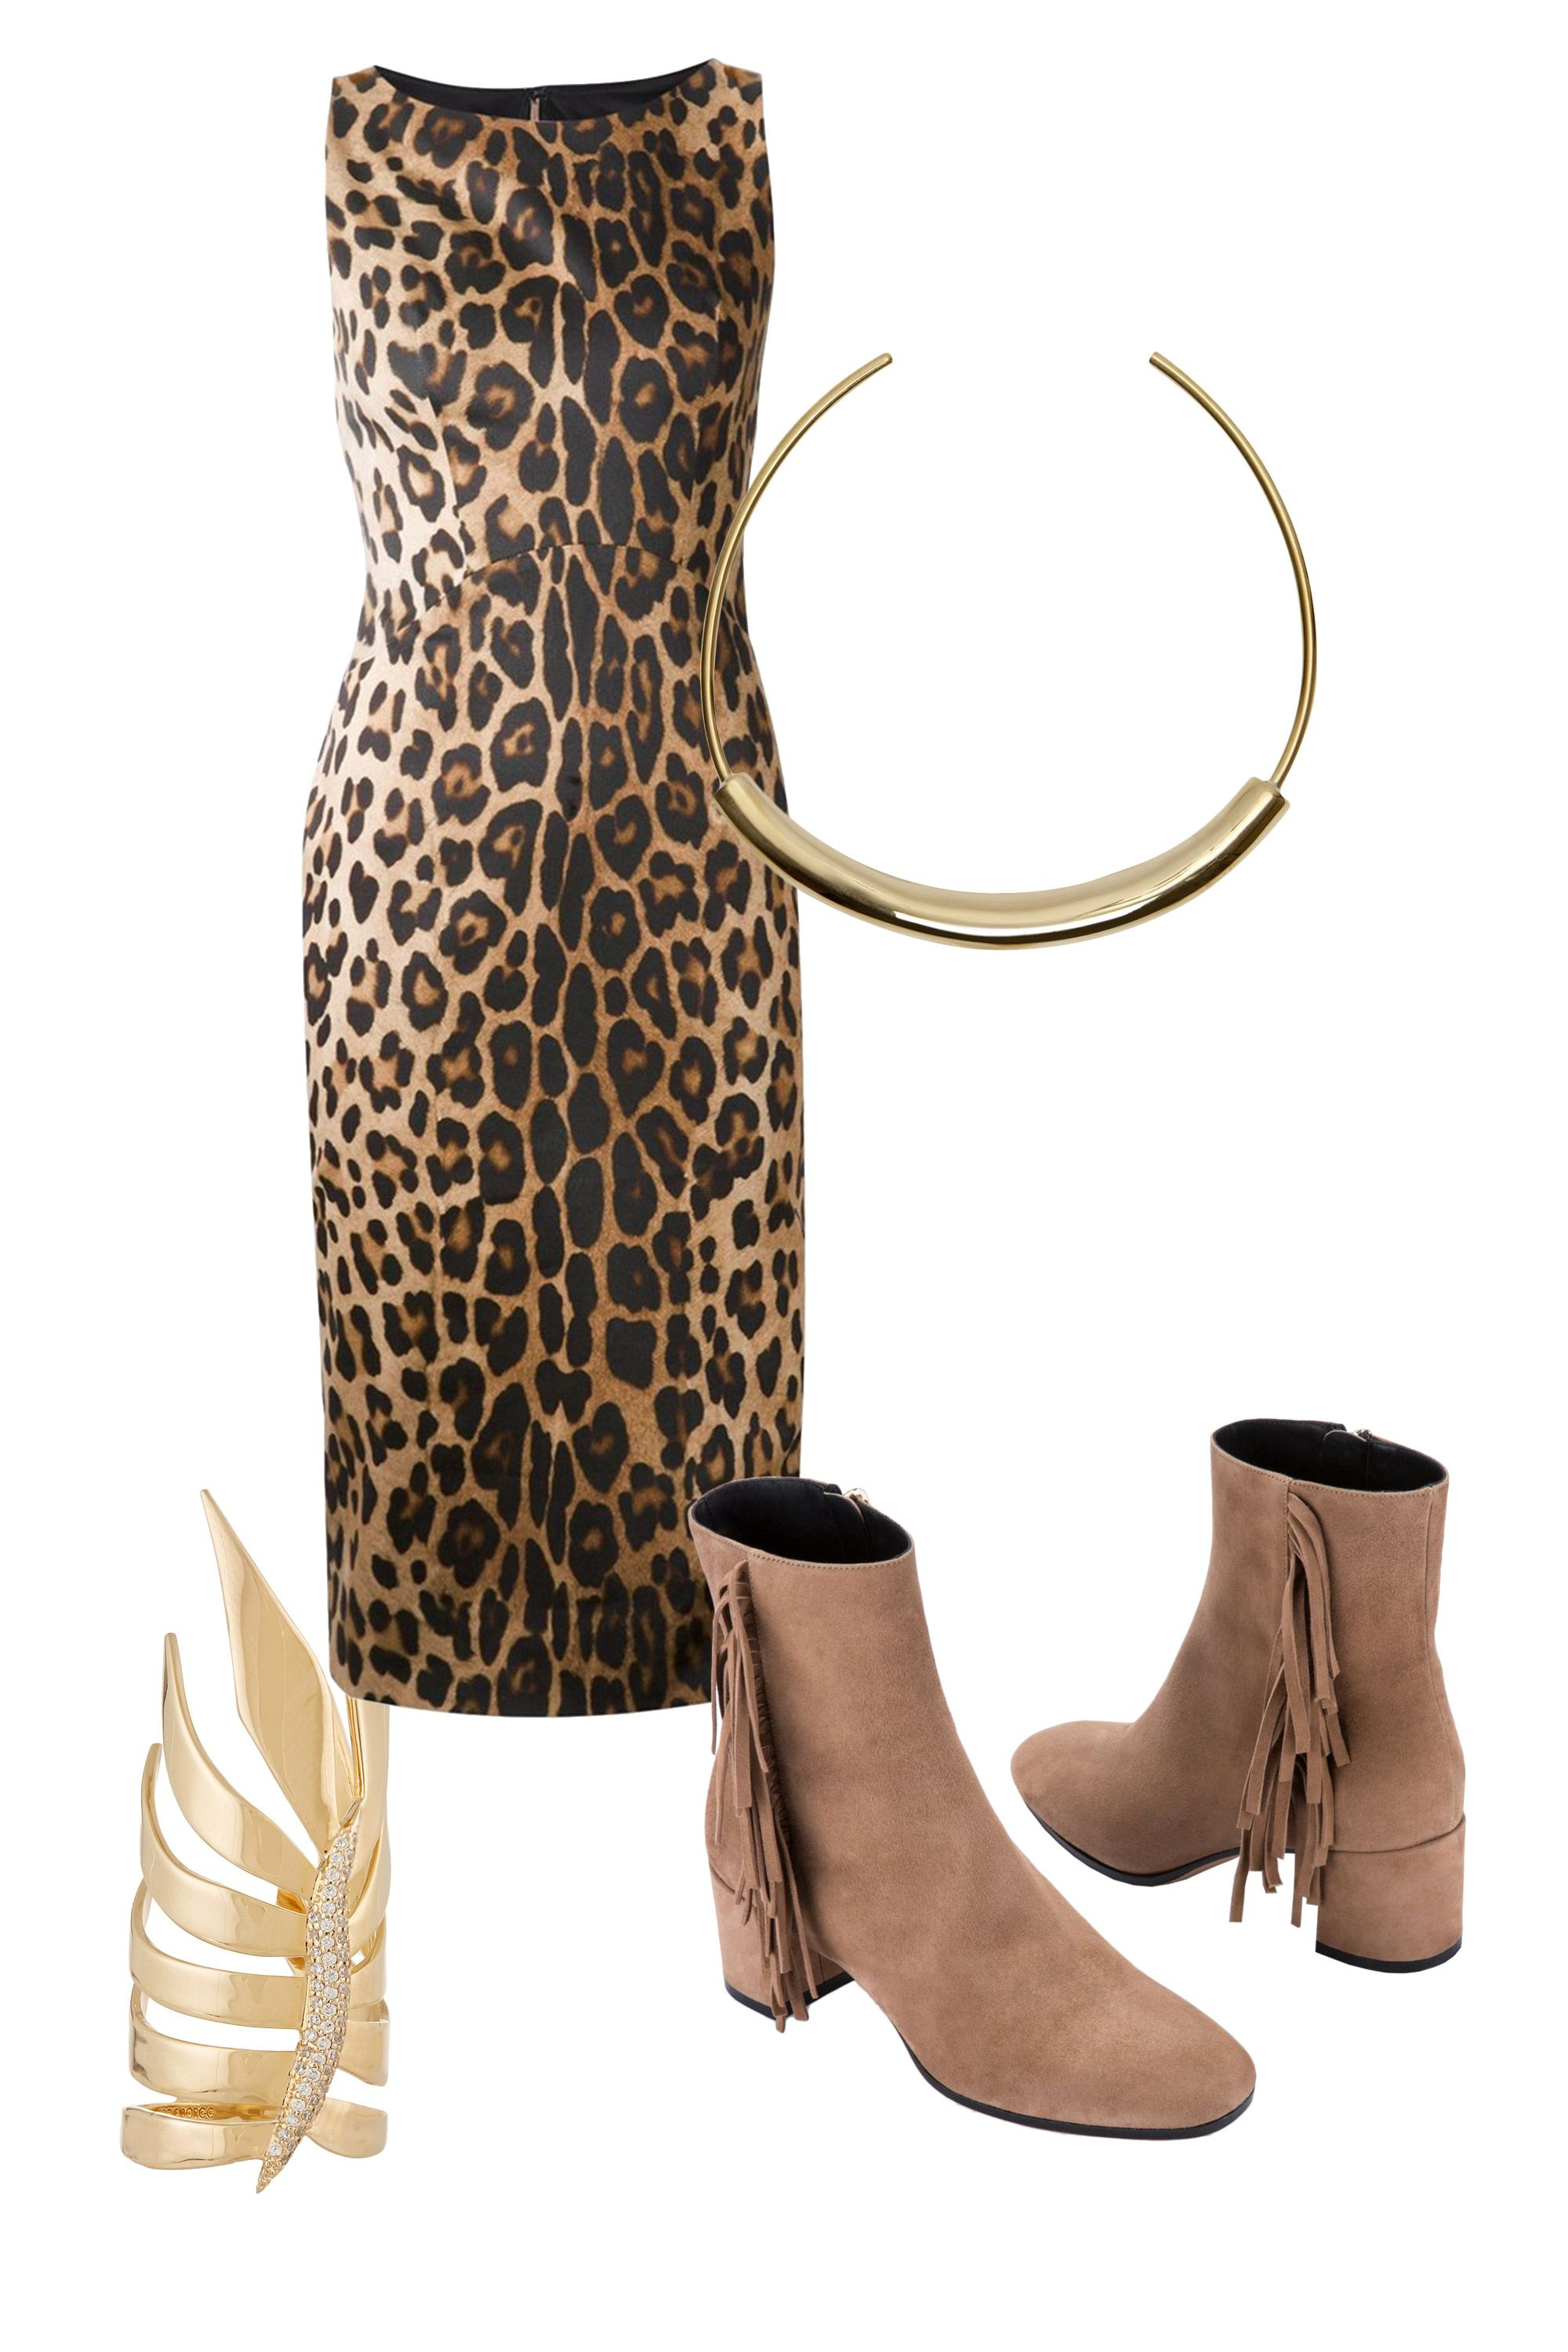 "<p>Rather than default to your L.B.D., try an ankle-skimming midi in a fun leopard print. Fringed booties are a fresh alternative to heels. A couple gold statement accessories and you're set.</p><p><strong>Eddie</strong> <strong>Borgo</strong> Frond Gold-Plated Cubic Zirconia Ring, $200, <a href=""http://www.net-a-porter.com/us/en/product/602544/eddie_borgo/frond-gold-plated-cubic-zirconia-ring"" target=""_blank"">net-a-porter.com</a>&#x3B; <strong>Altuzarra</strong> Leopard Print Fitted Dress, $907, <a href=""http://www.farfetch.com/shopping/women/altuzarra-leopard-print-fitted-dress--item-11059617.aspx?storeid=9531&ffref=lp_pic_70_8_"" target=""_blank"">farfetch.com</a>&#x3B; <strong>Jennifer</strong> <strong>Fisher</strong> Short Cylinder Choker, $1,225, <a href=""https://shop.harpersbazaar.com/designers/j/jennifer-fisher/short-cylinder-choker-6151.html"" target=""_blank"">shopBAZAAR.com</a>&#x3B; <strong>M. Gemi</strong> The Alumno boots, $348, <a href=""http://mgemi.com/w/all-shoes/the-alunno/01_1199_02.html/#!/color/981"" target=""_blank"">mgemi.com</a></p>"